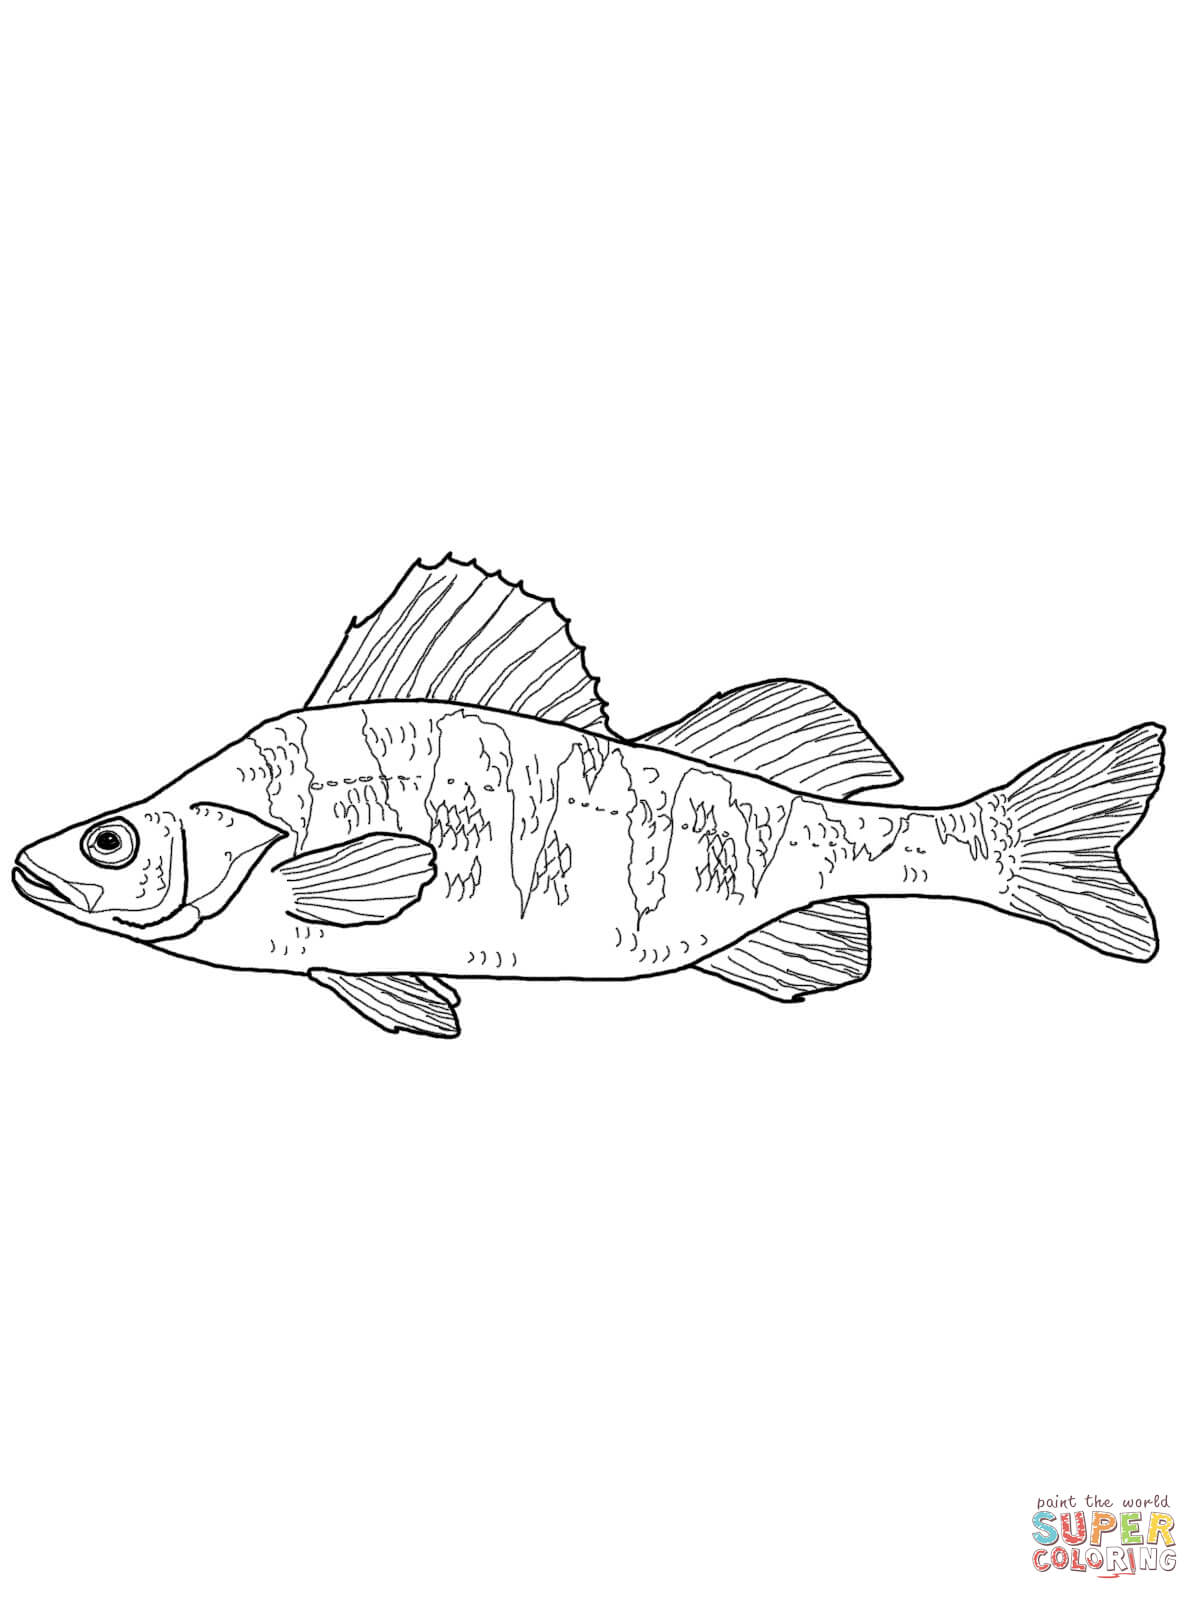 Yellow perch clipart banner freeuse download Perch coloring pages | Free Coloring Pages banner freeuse download